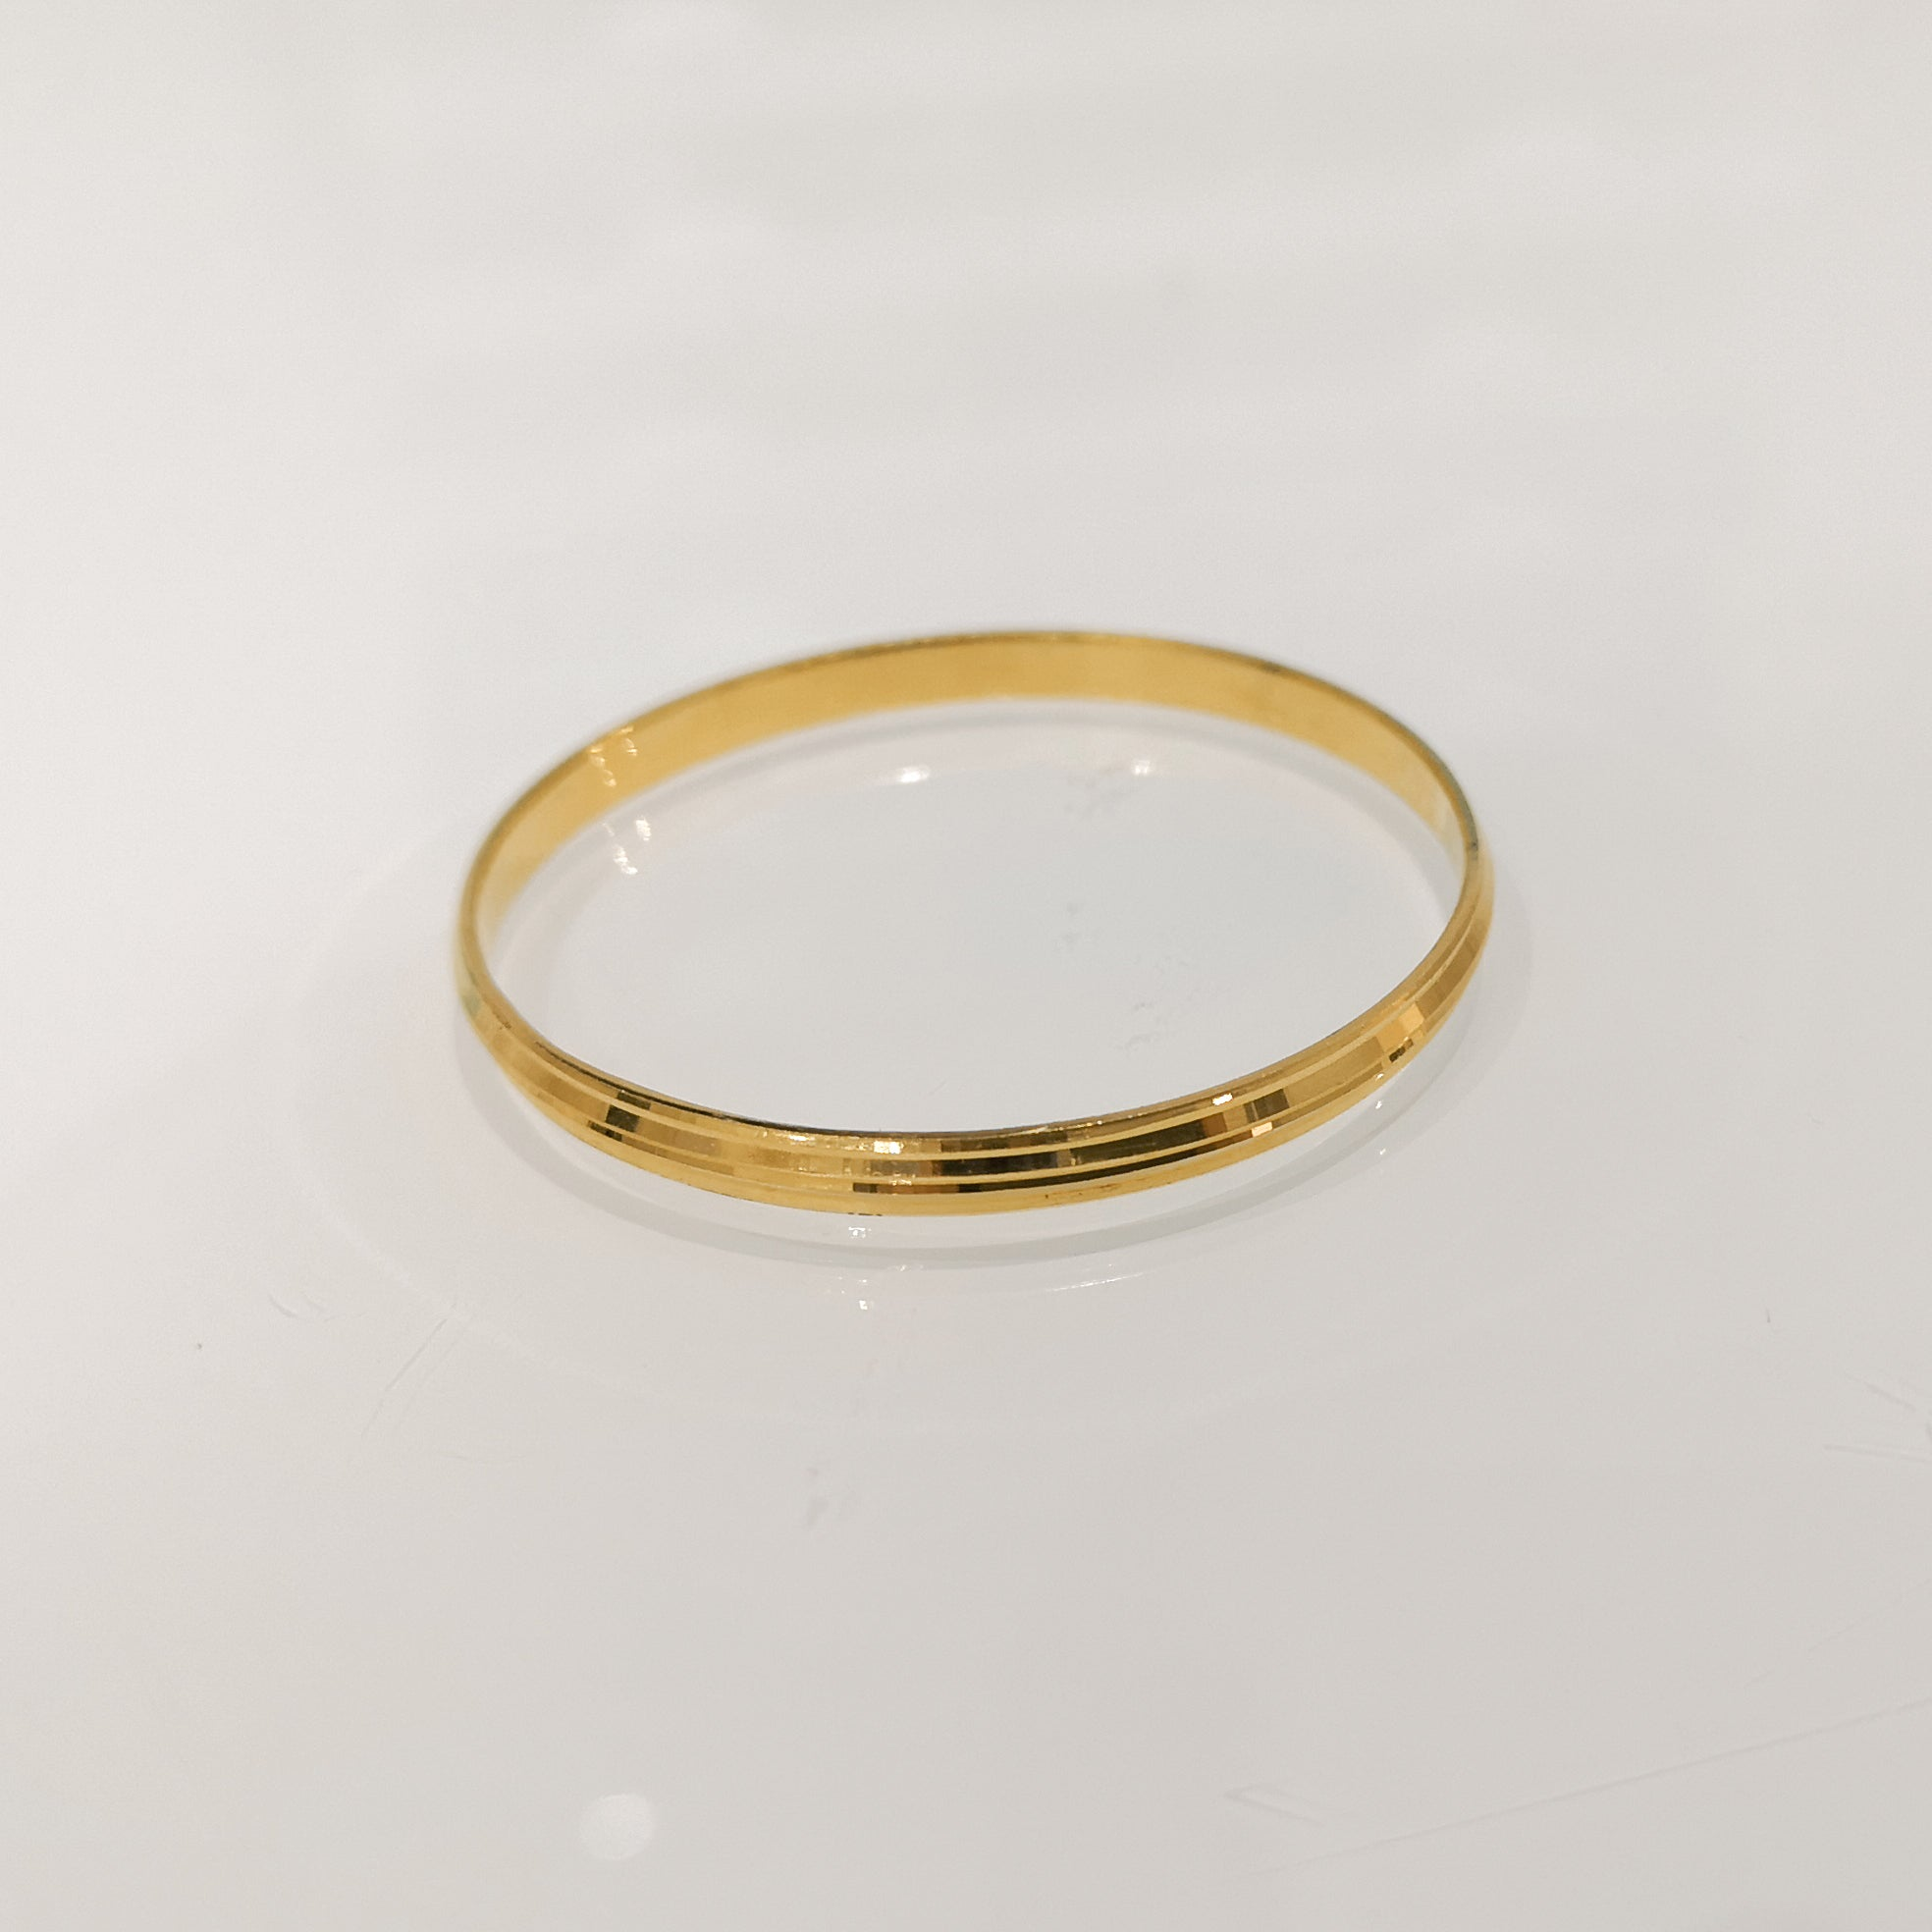 22ct Gold Children's Kada Style Bangle CB-7330